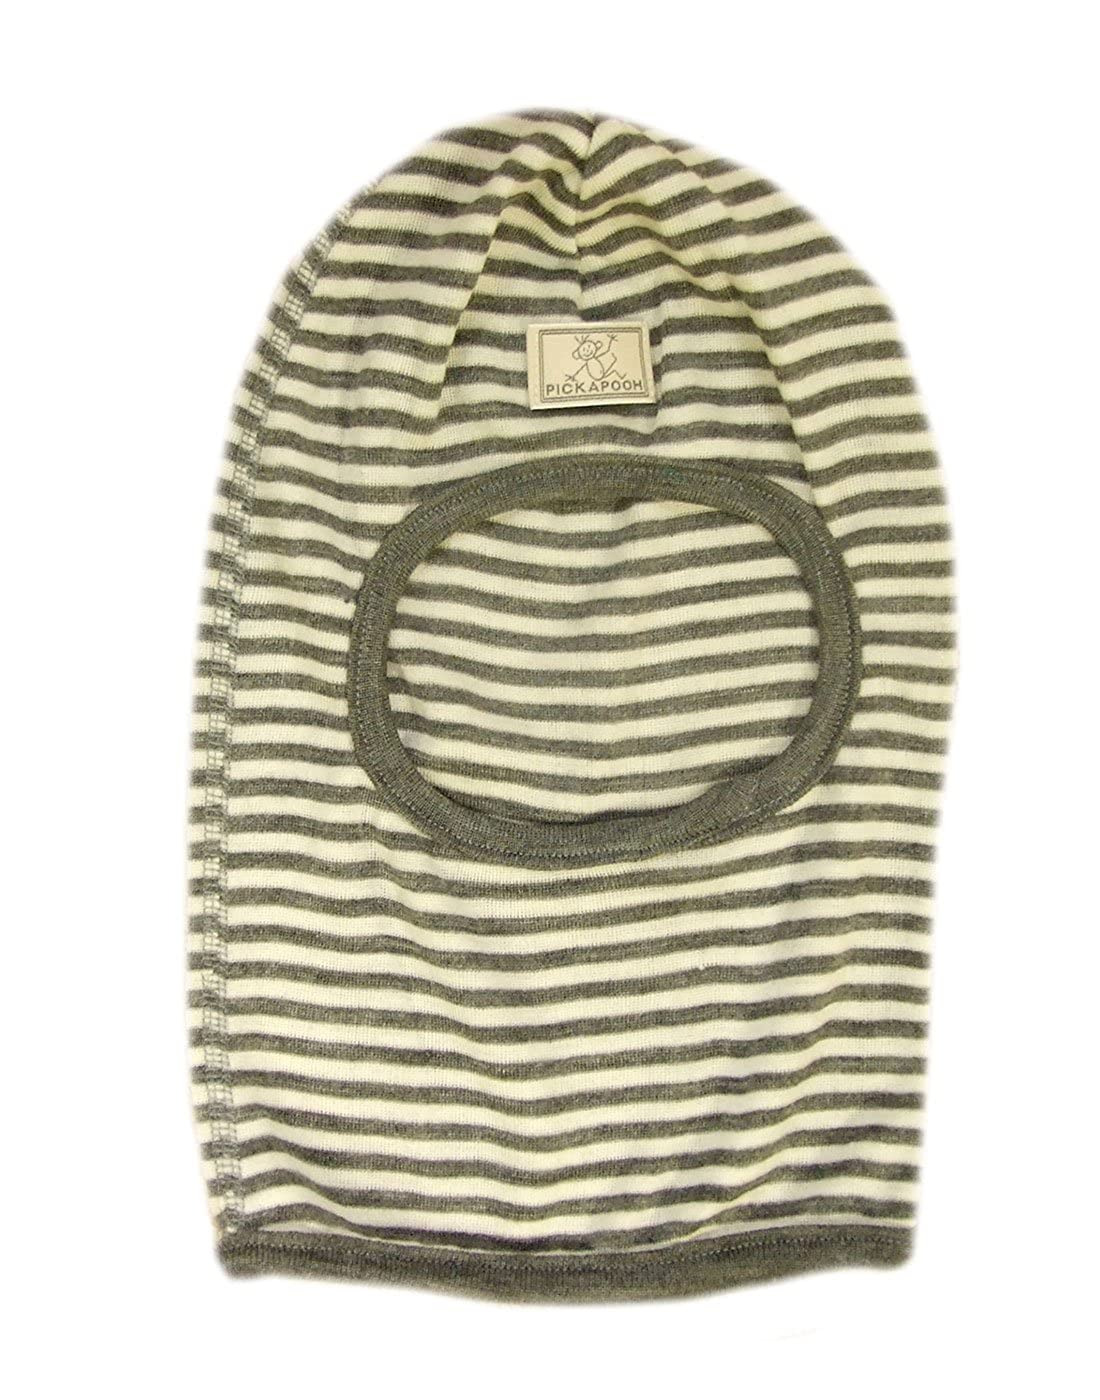 92a4542791d PICKAPOOH Hat MERINO wool SILK Balaclava Baby Boy Girl Children Winter  Organic Bosse  Amazon.co.uk  Clothing